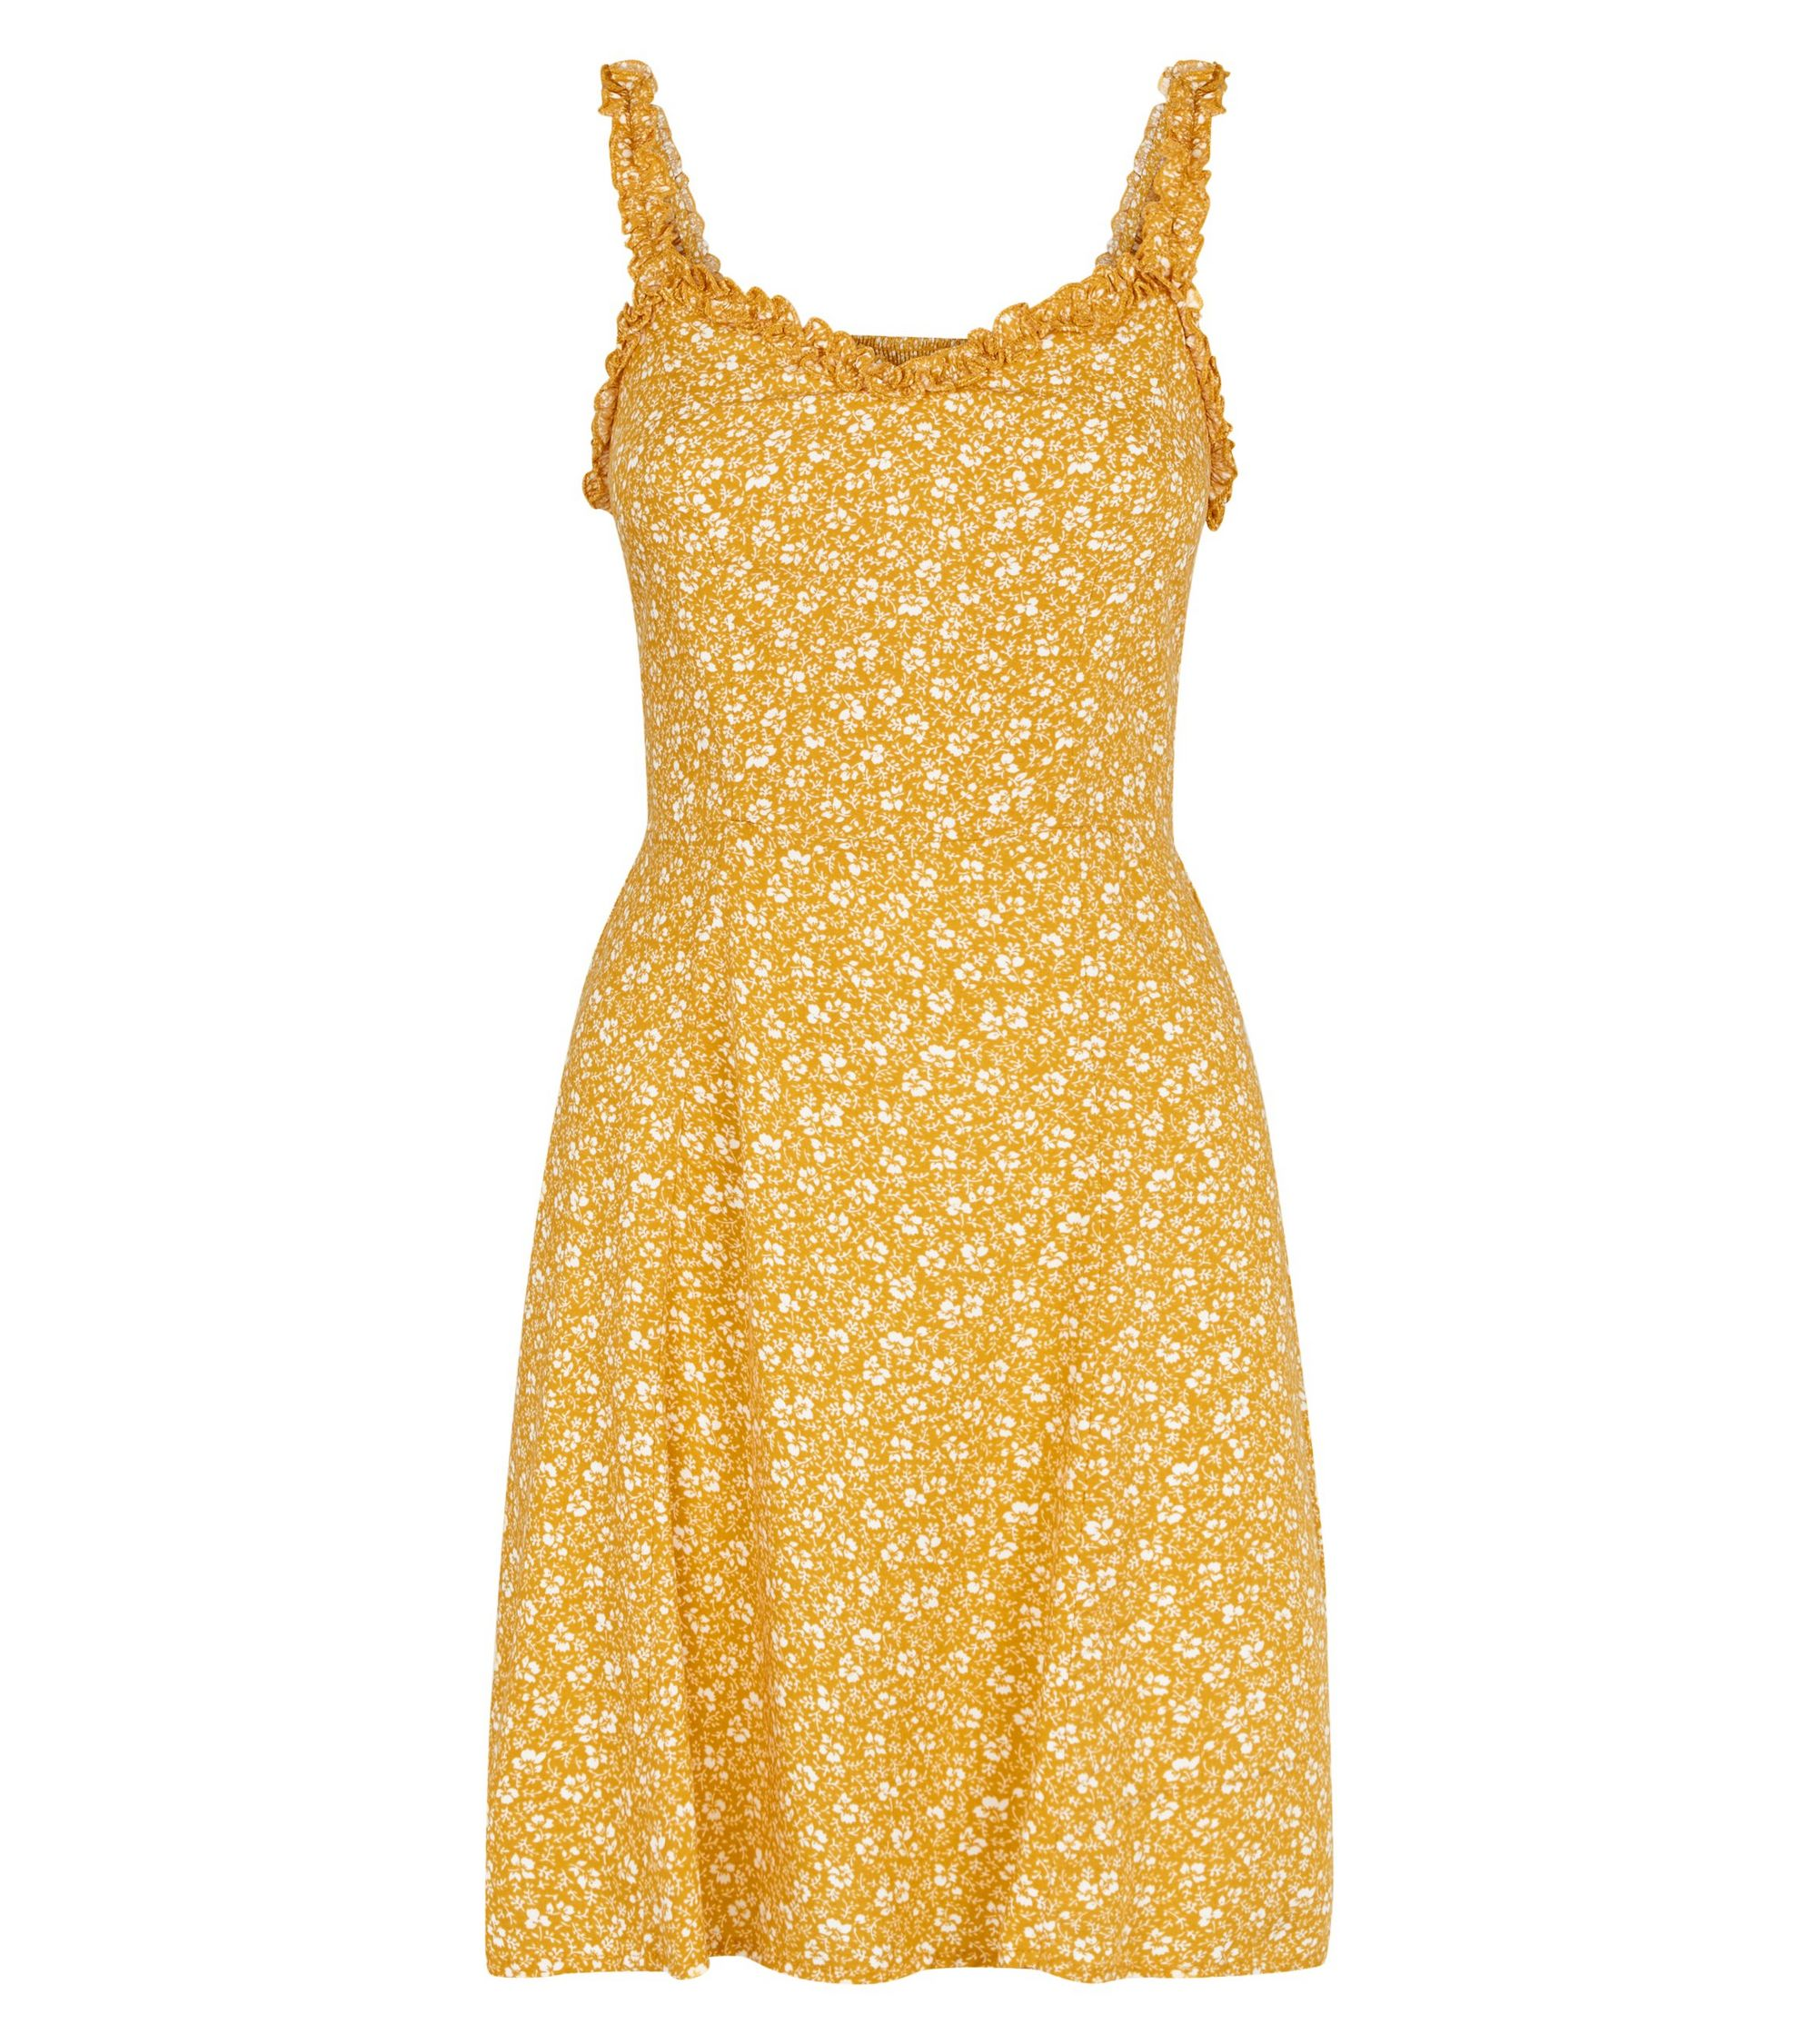 15e0852463d4 New Look mustard floral print frill trim sundress at £15.99